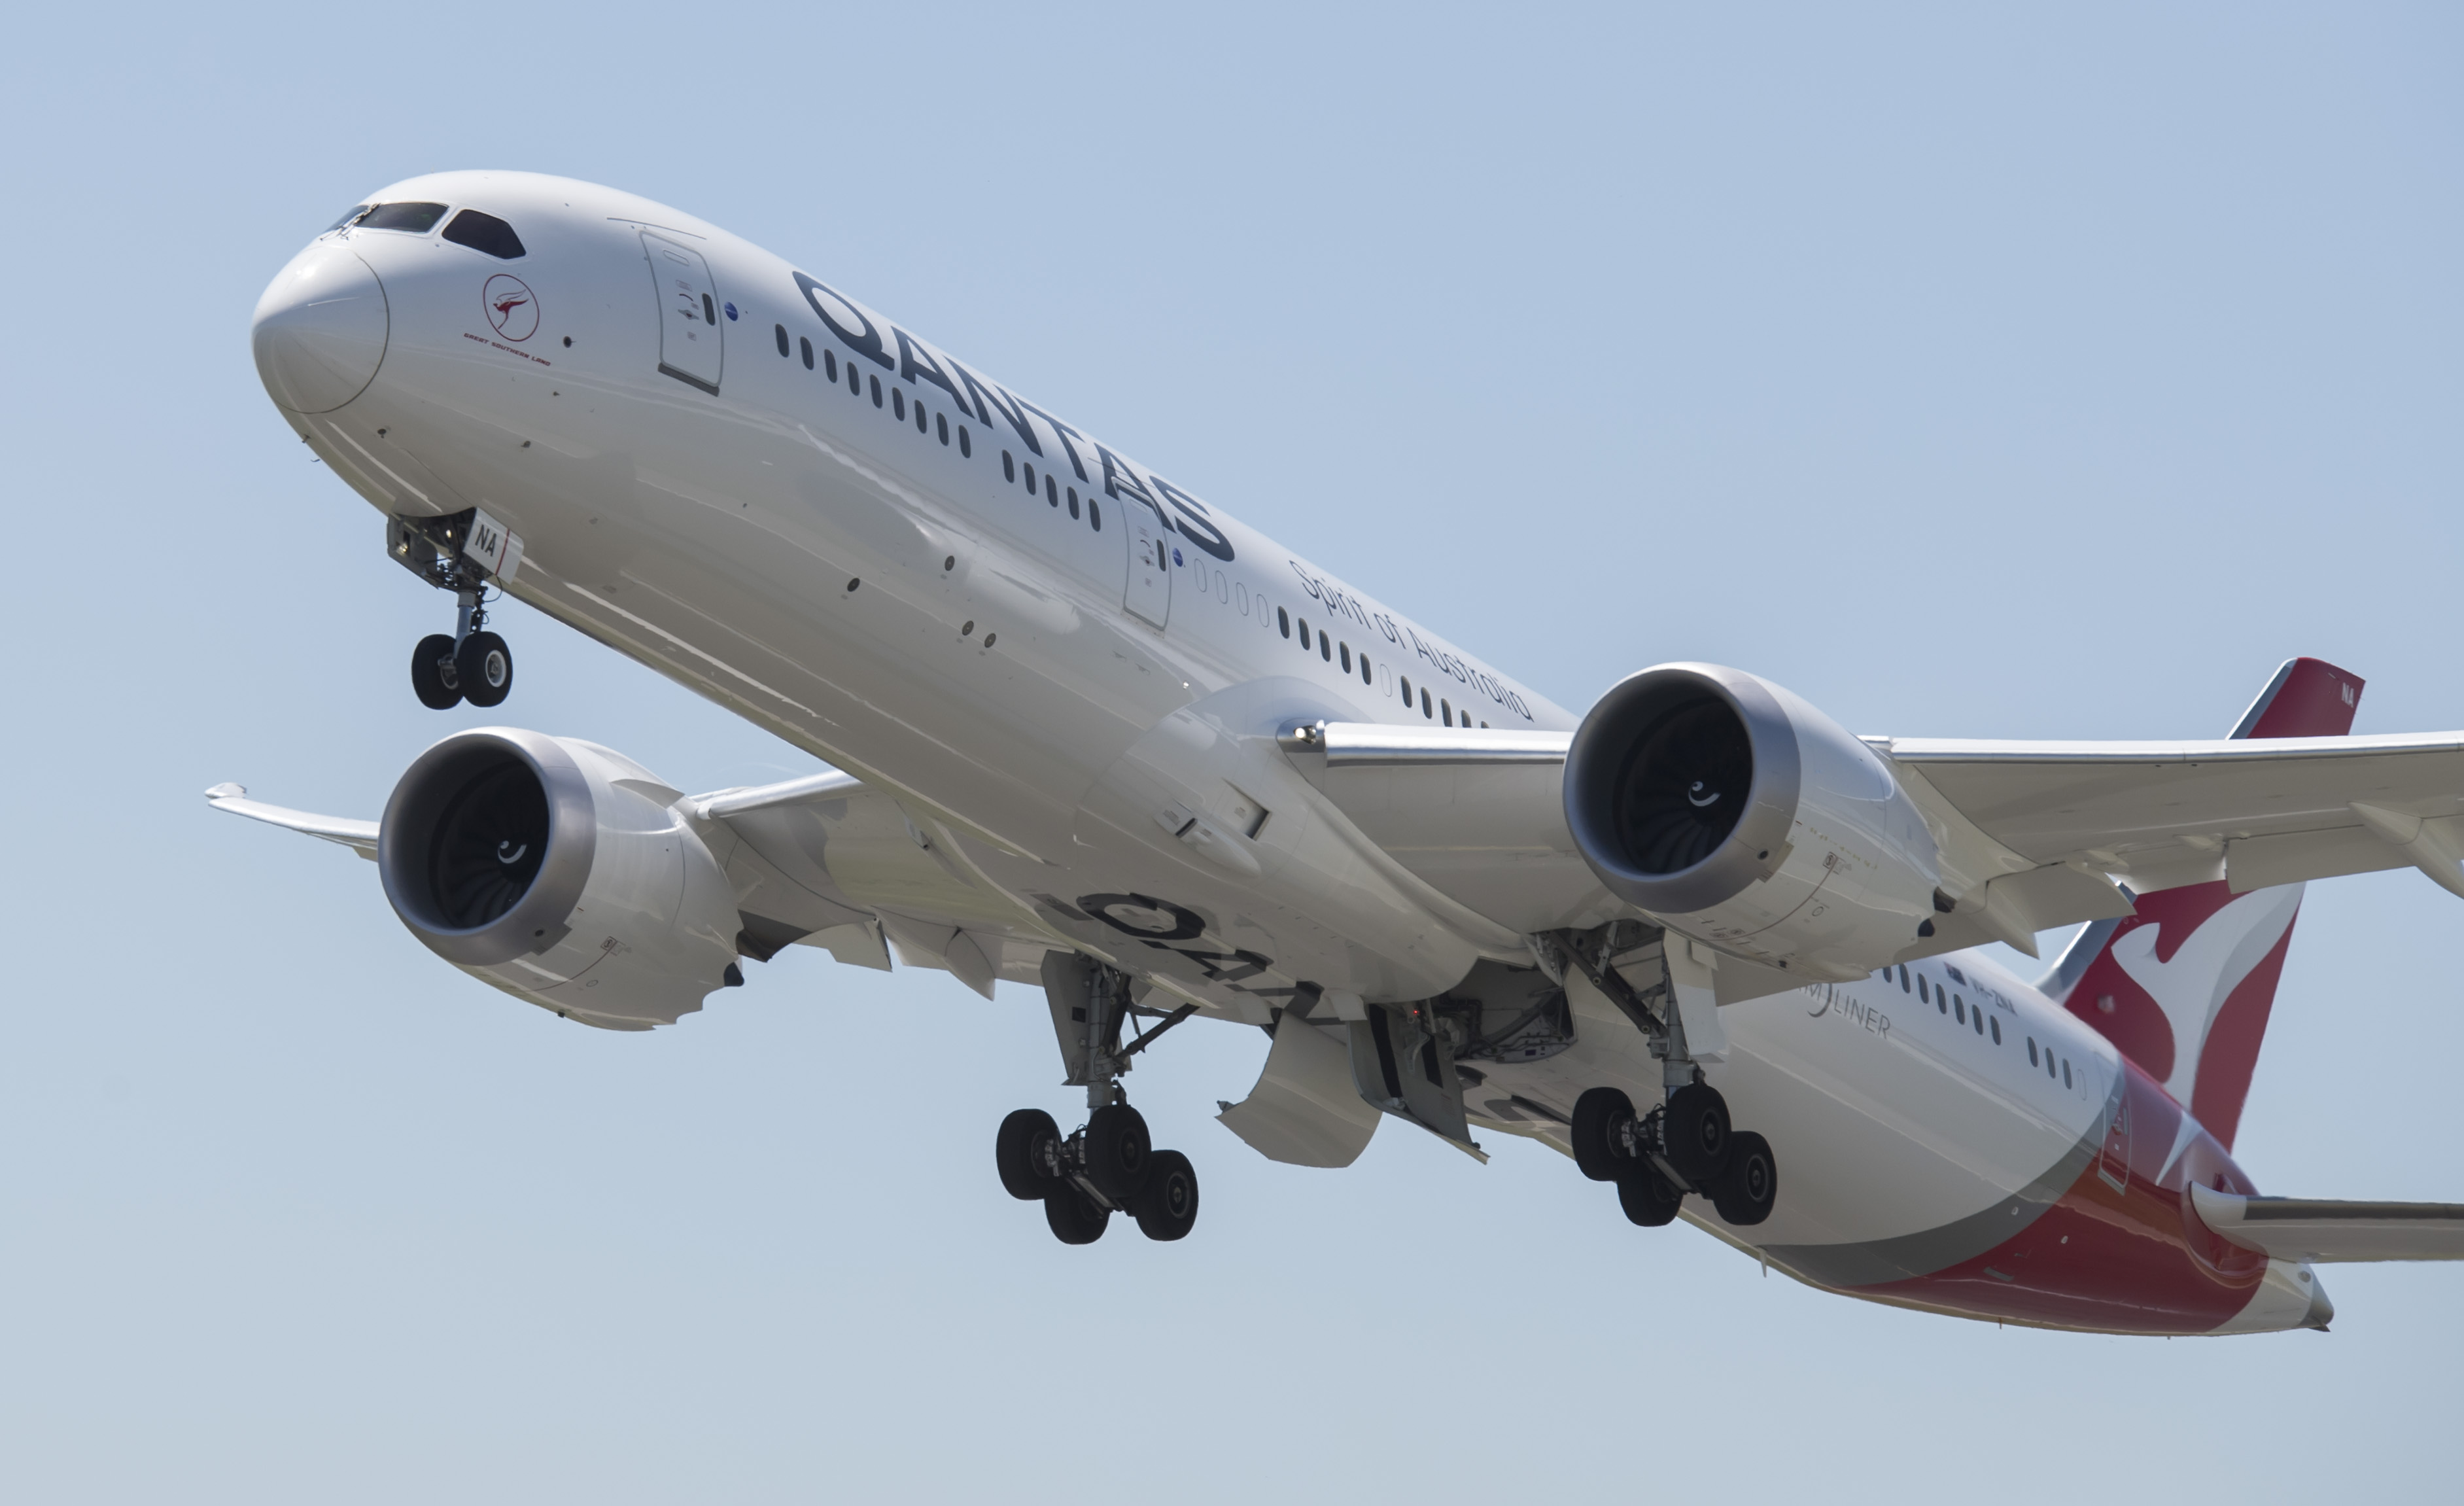 Qantas Boeing 787 Dreamliner Takes Off For First Melbourne To Los Angeles Flight